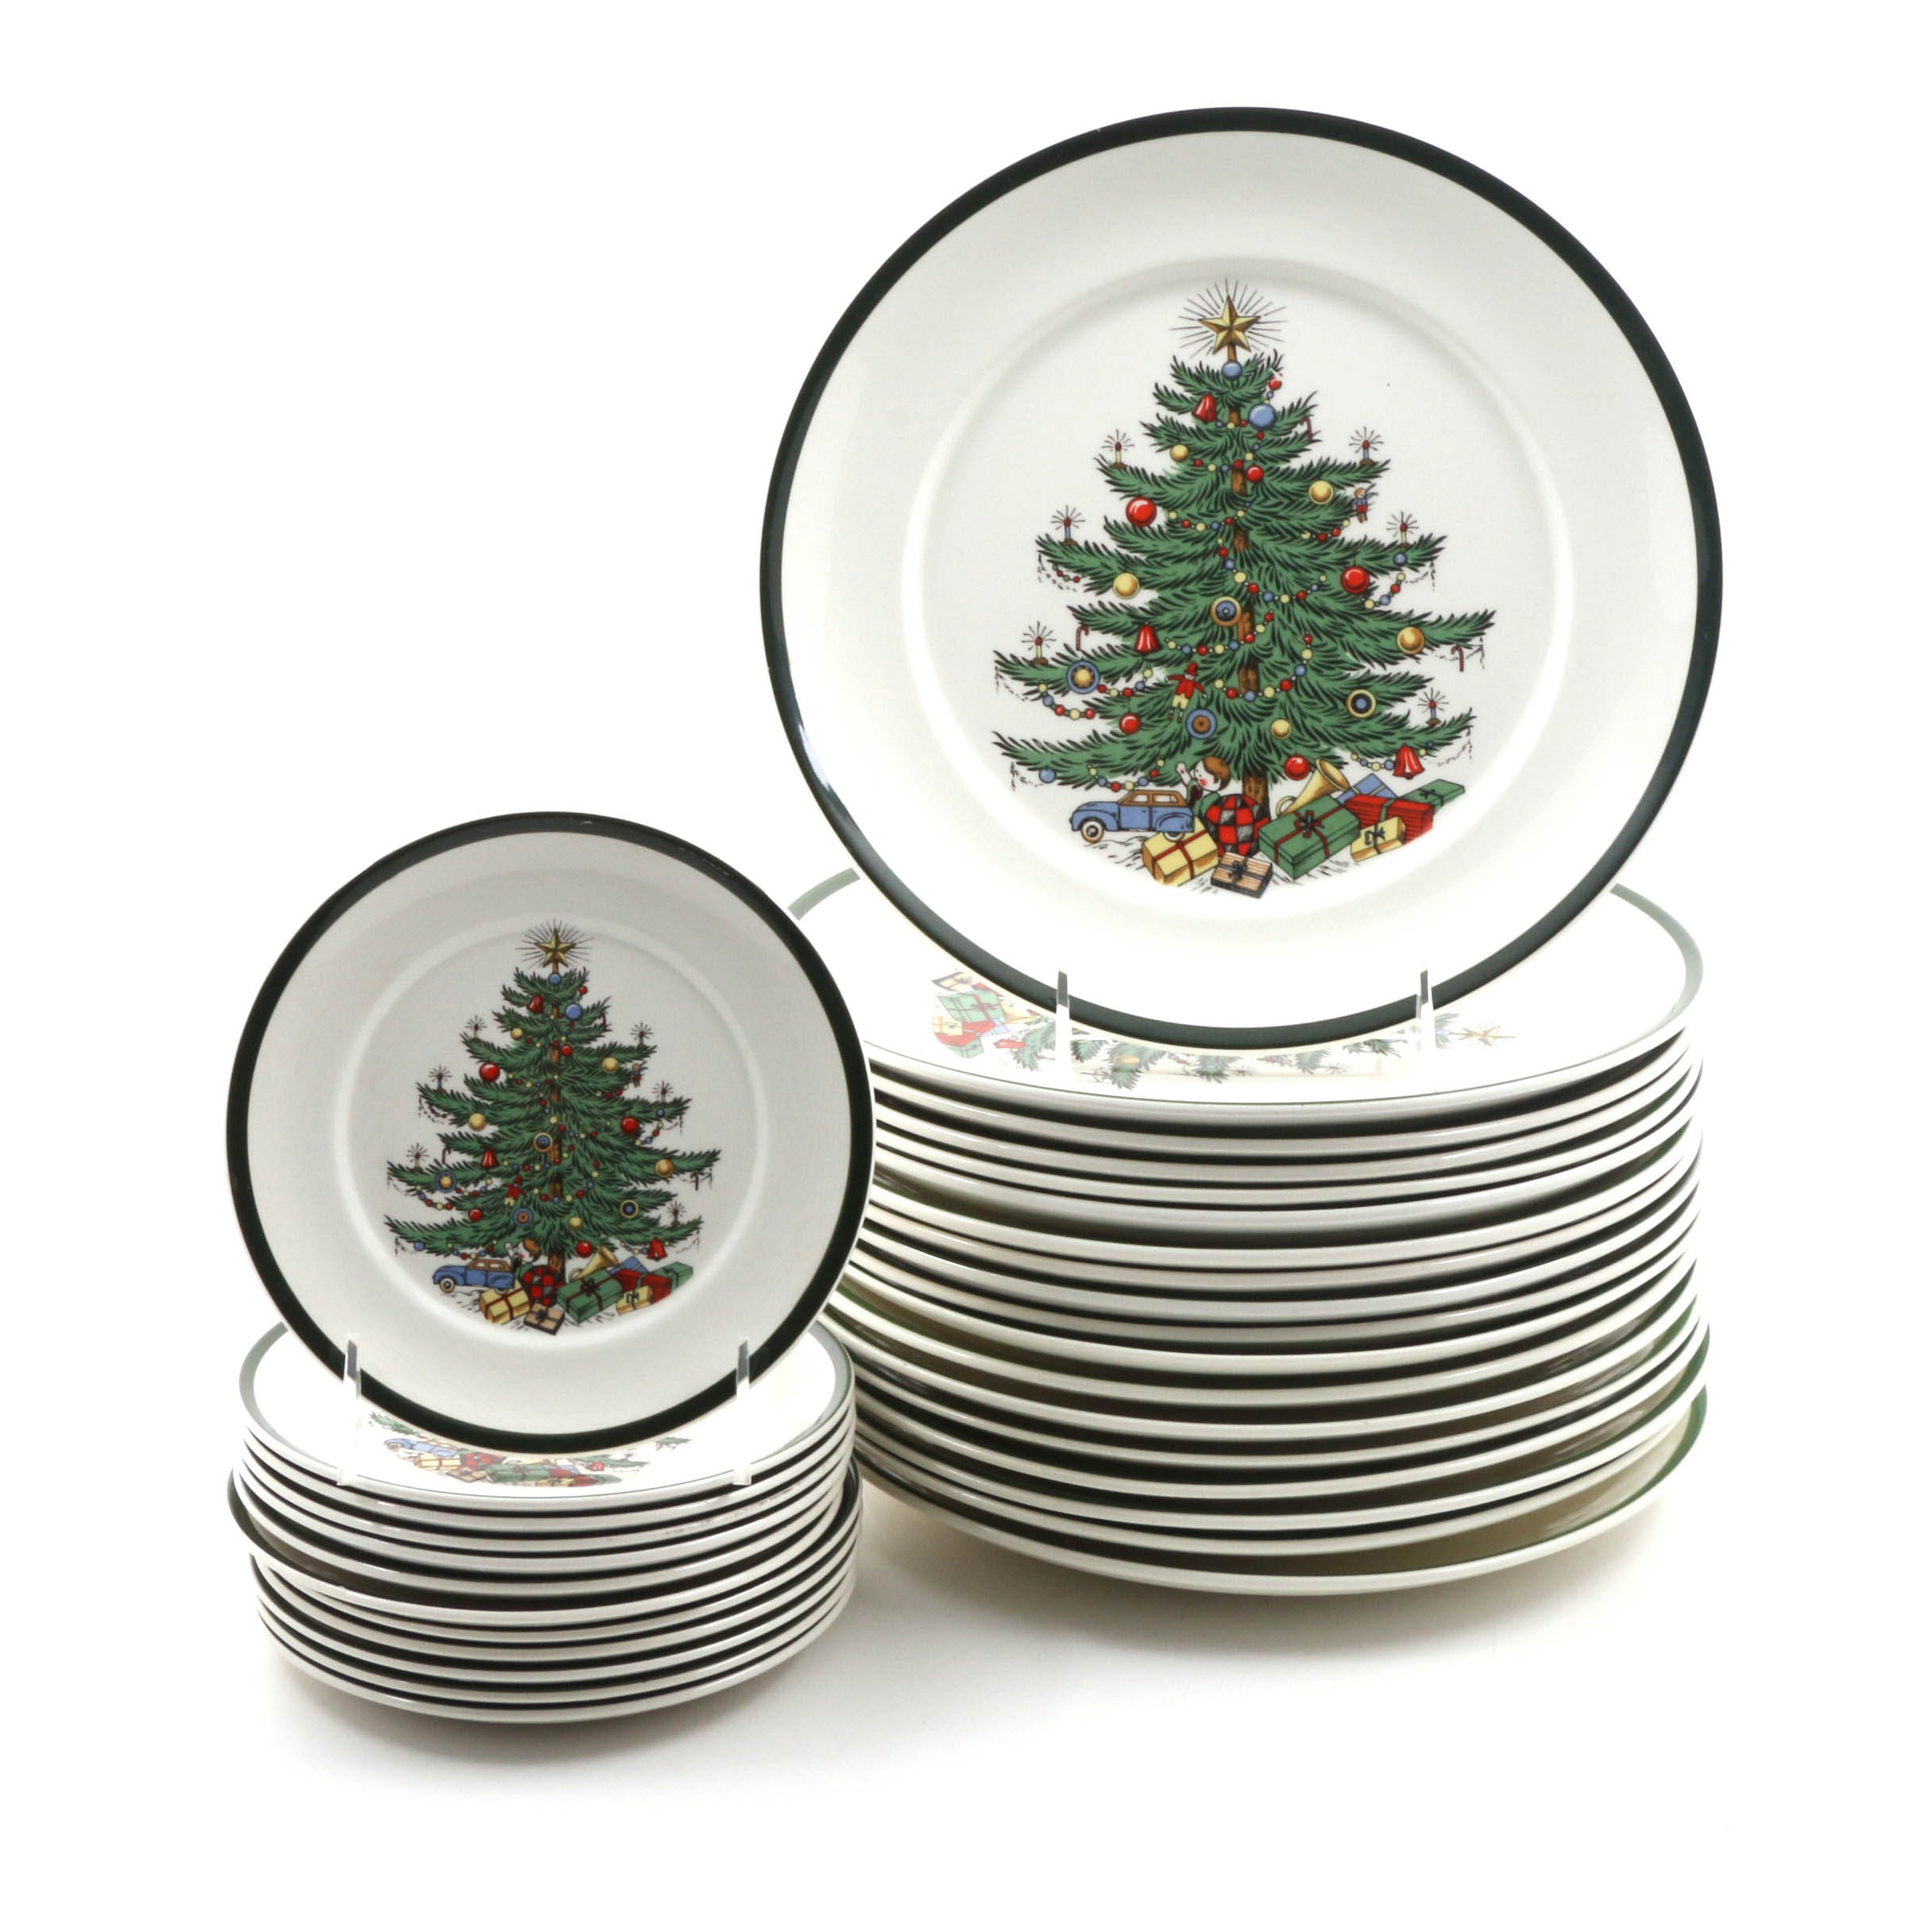 Original Christmas Tree  Dinnerware by Cuthbertson Made in England ...  sc 1 st  EBTH.com & Original Christmas Tree